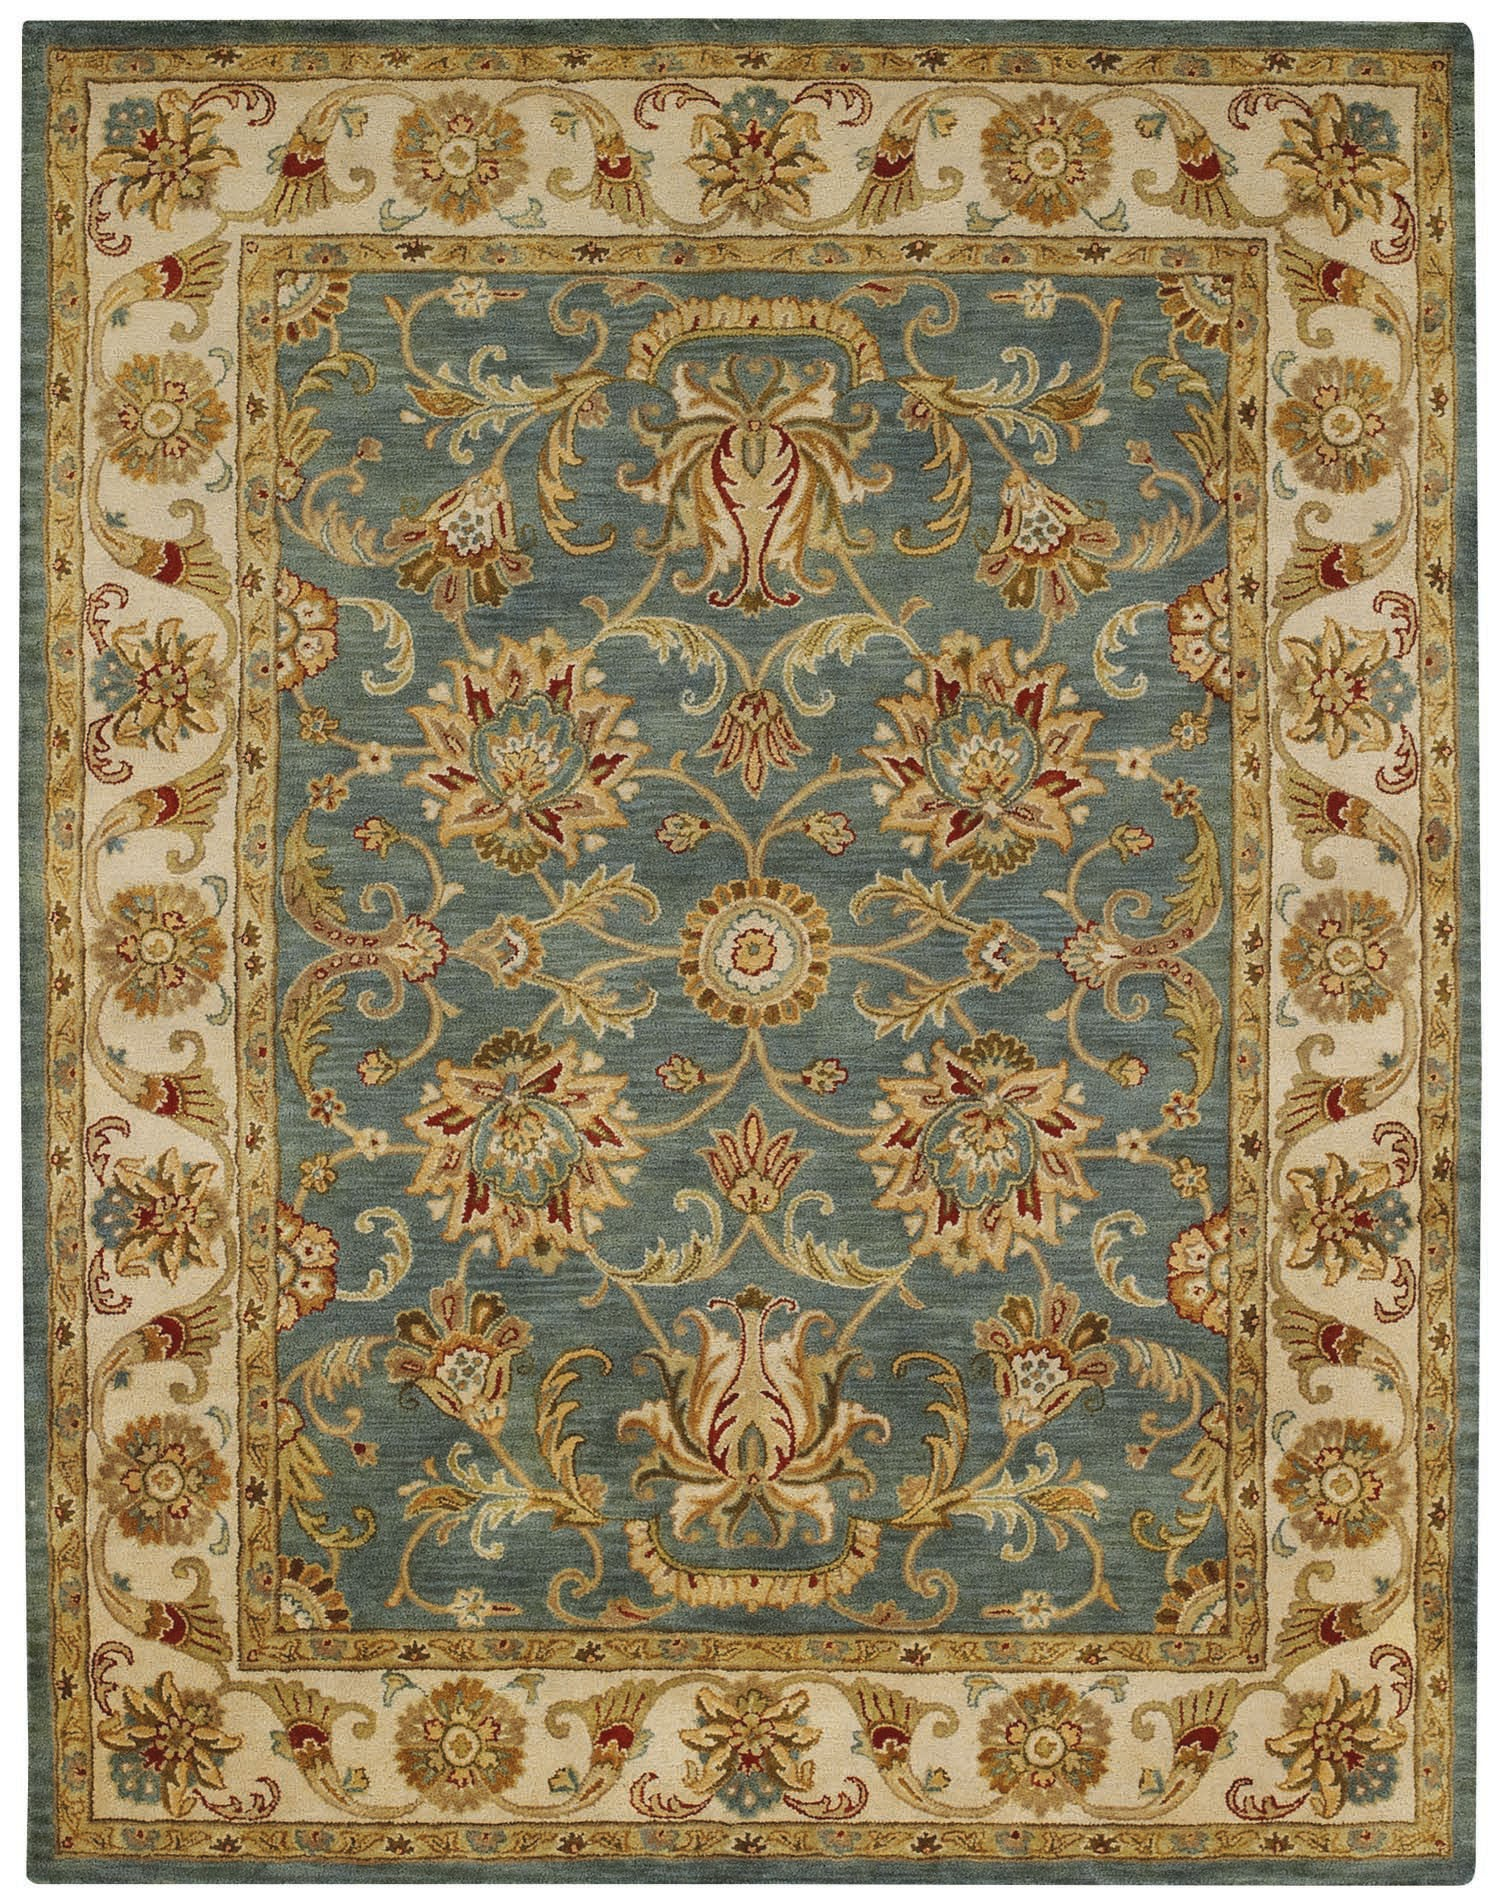 Capel Guilded 9205 Sapphire 460 Area Rug main image